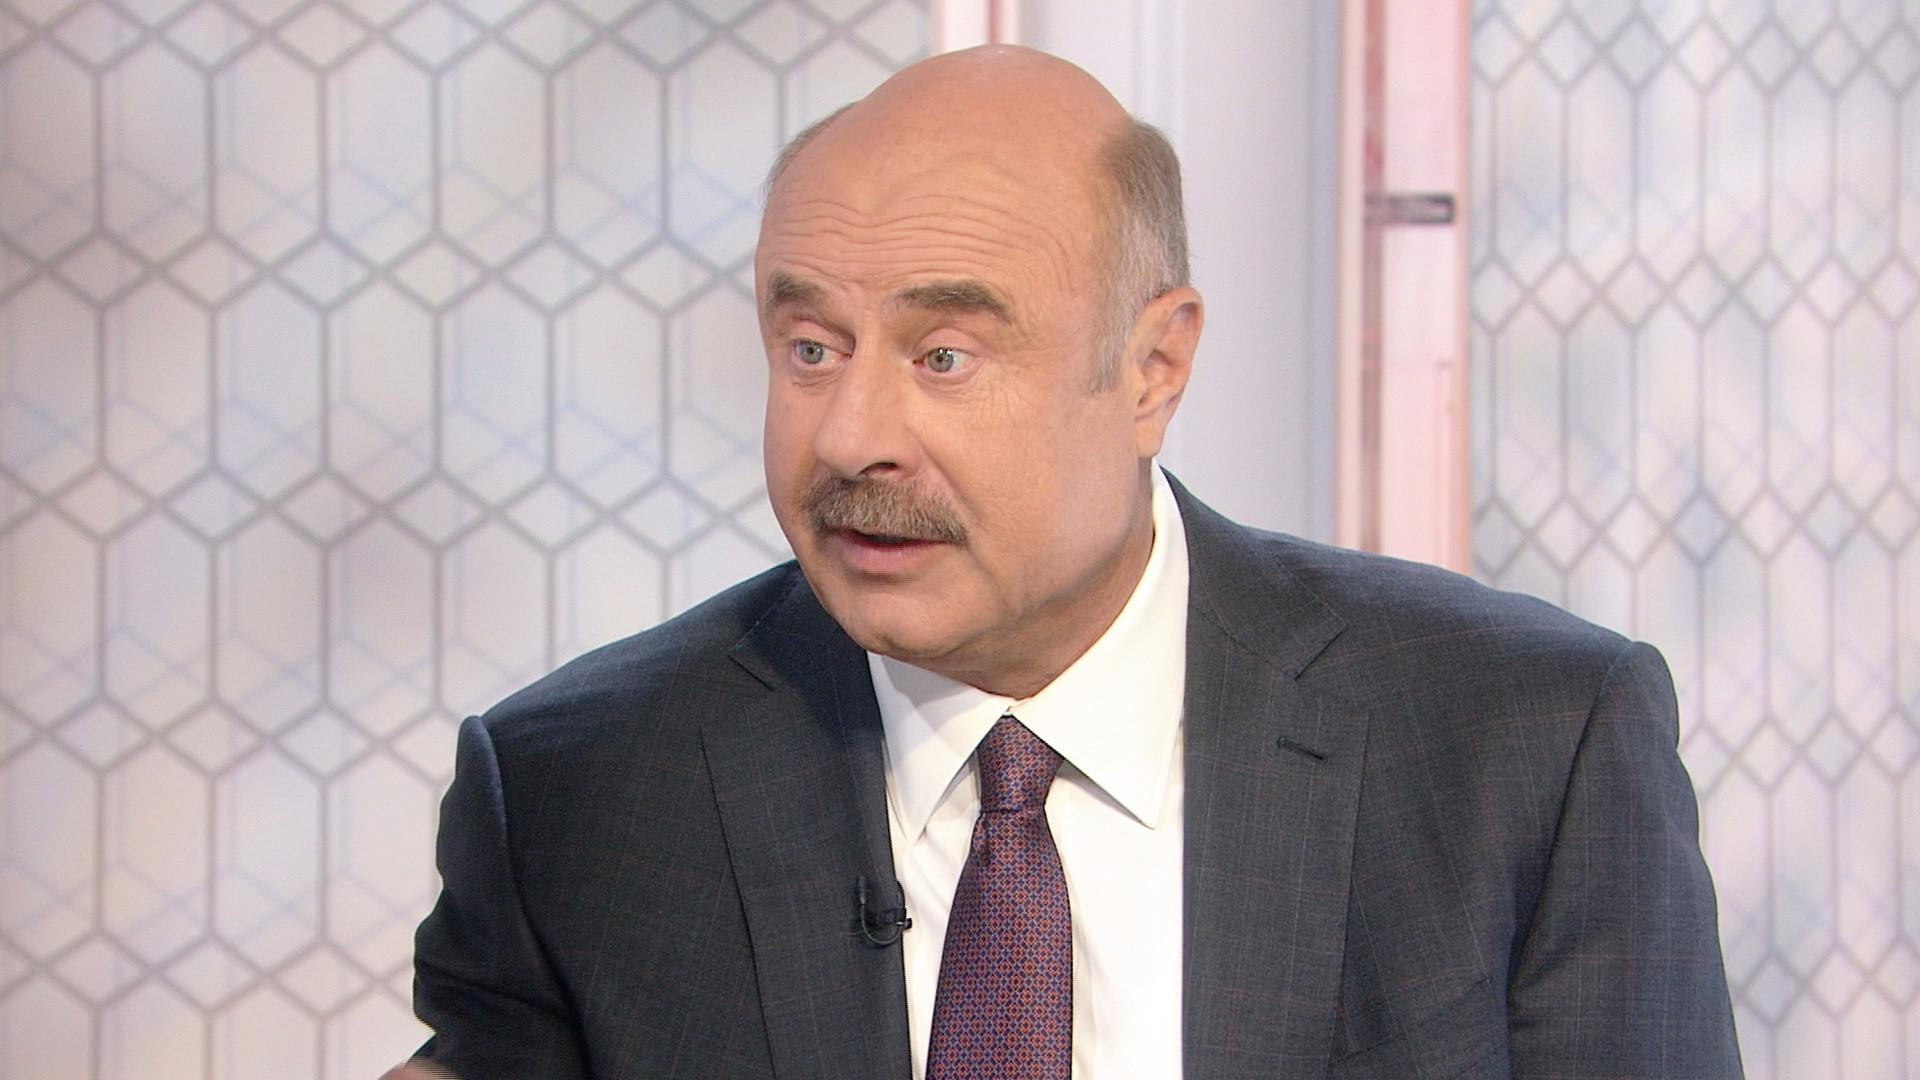 online dating scams dr phil